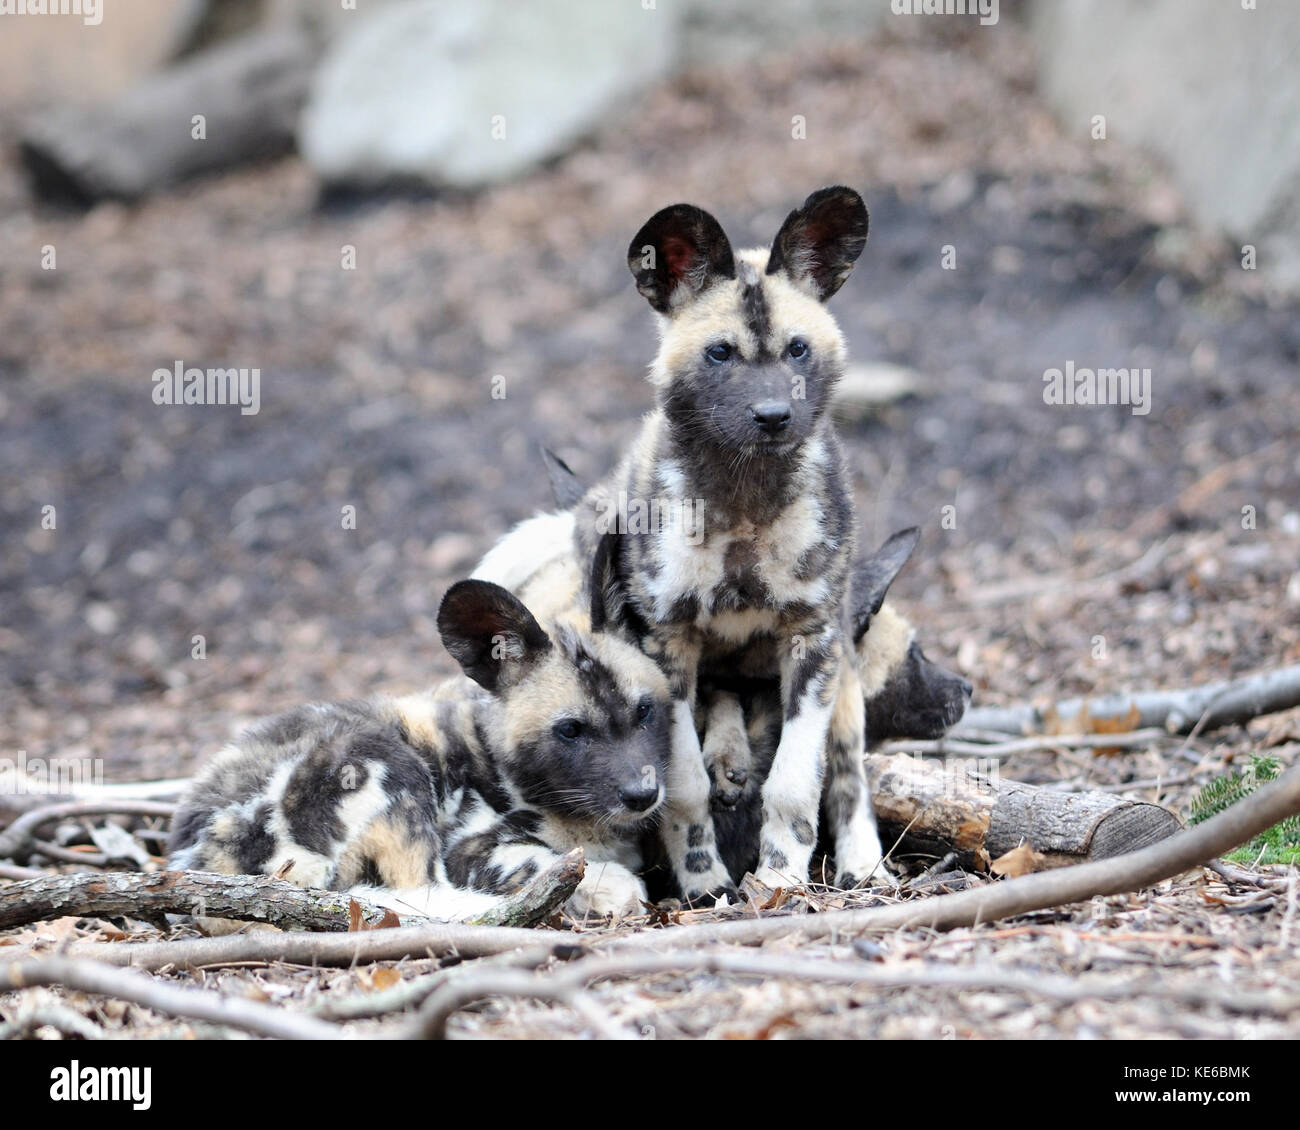 African wild dogs (Lycaon pictus) pups - Stock Image